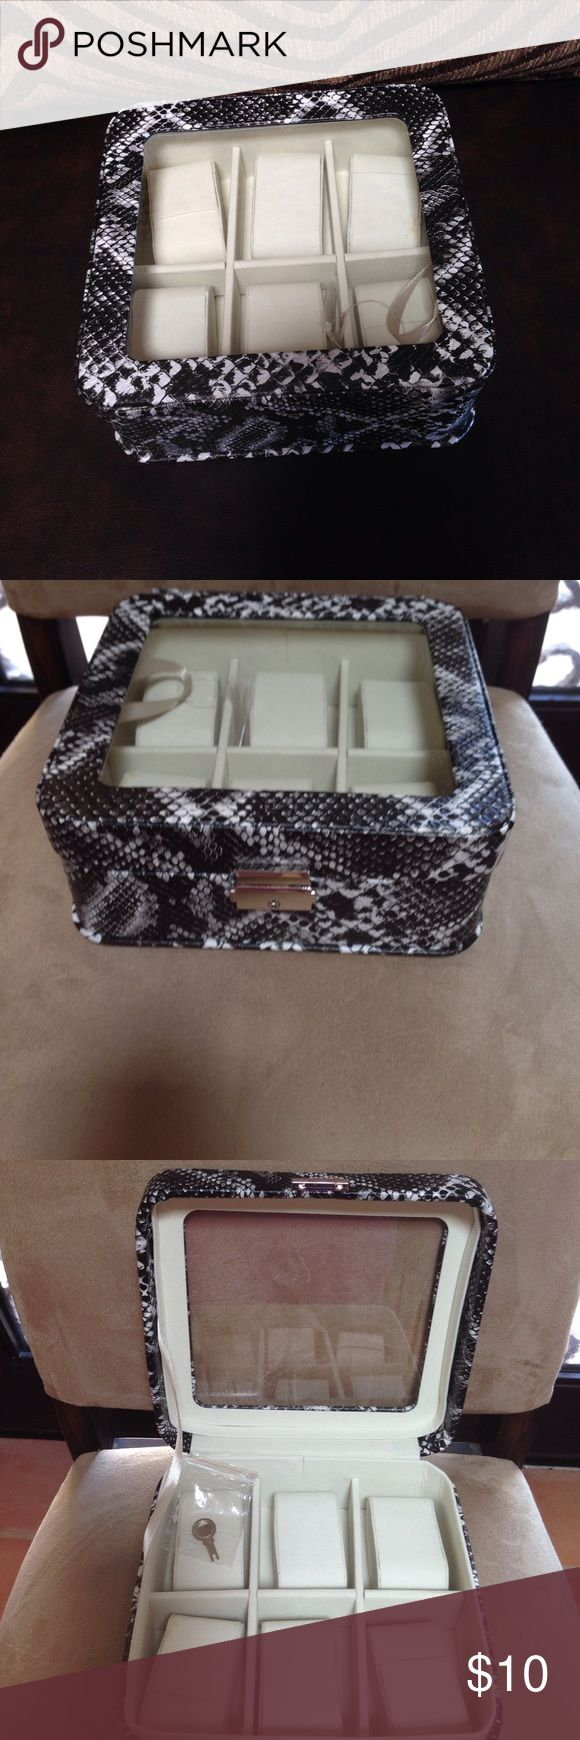 Watch storage box Box with key for storing your watches in snake-like material. Can store 6 watches. Black/white color Other